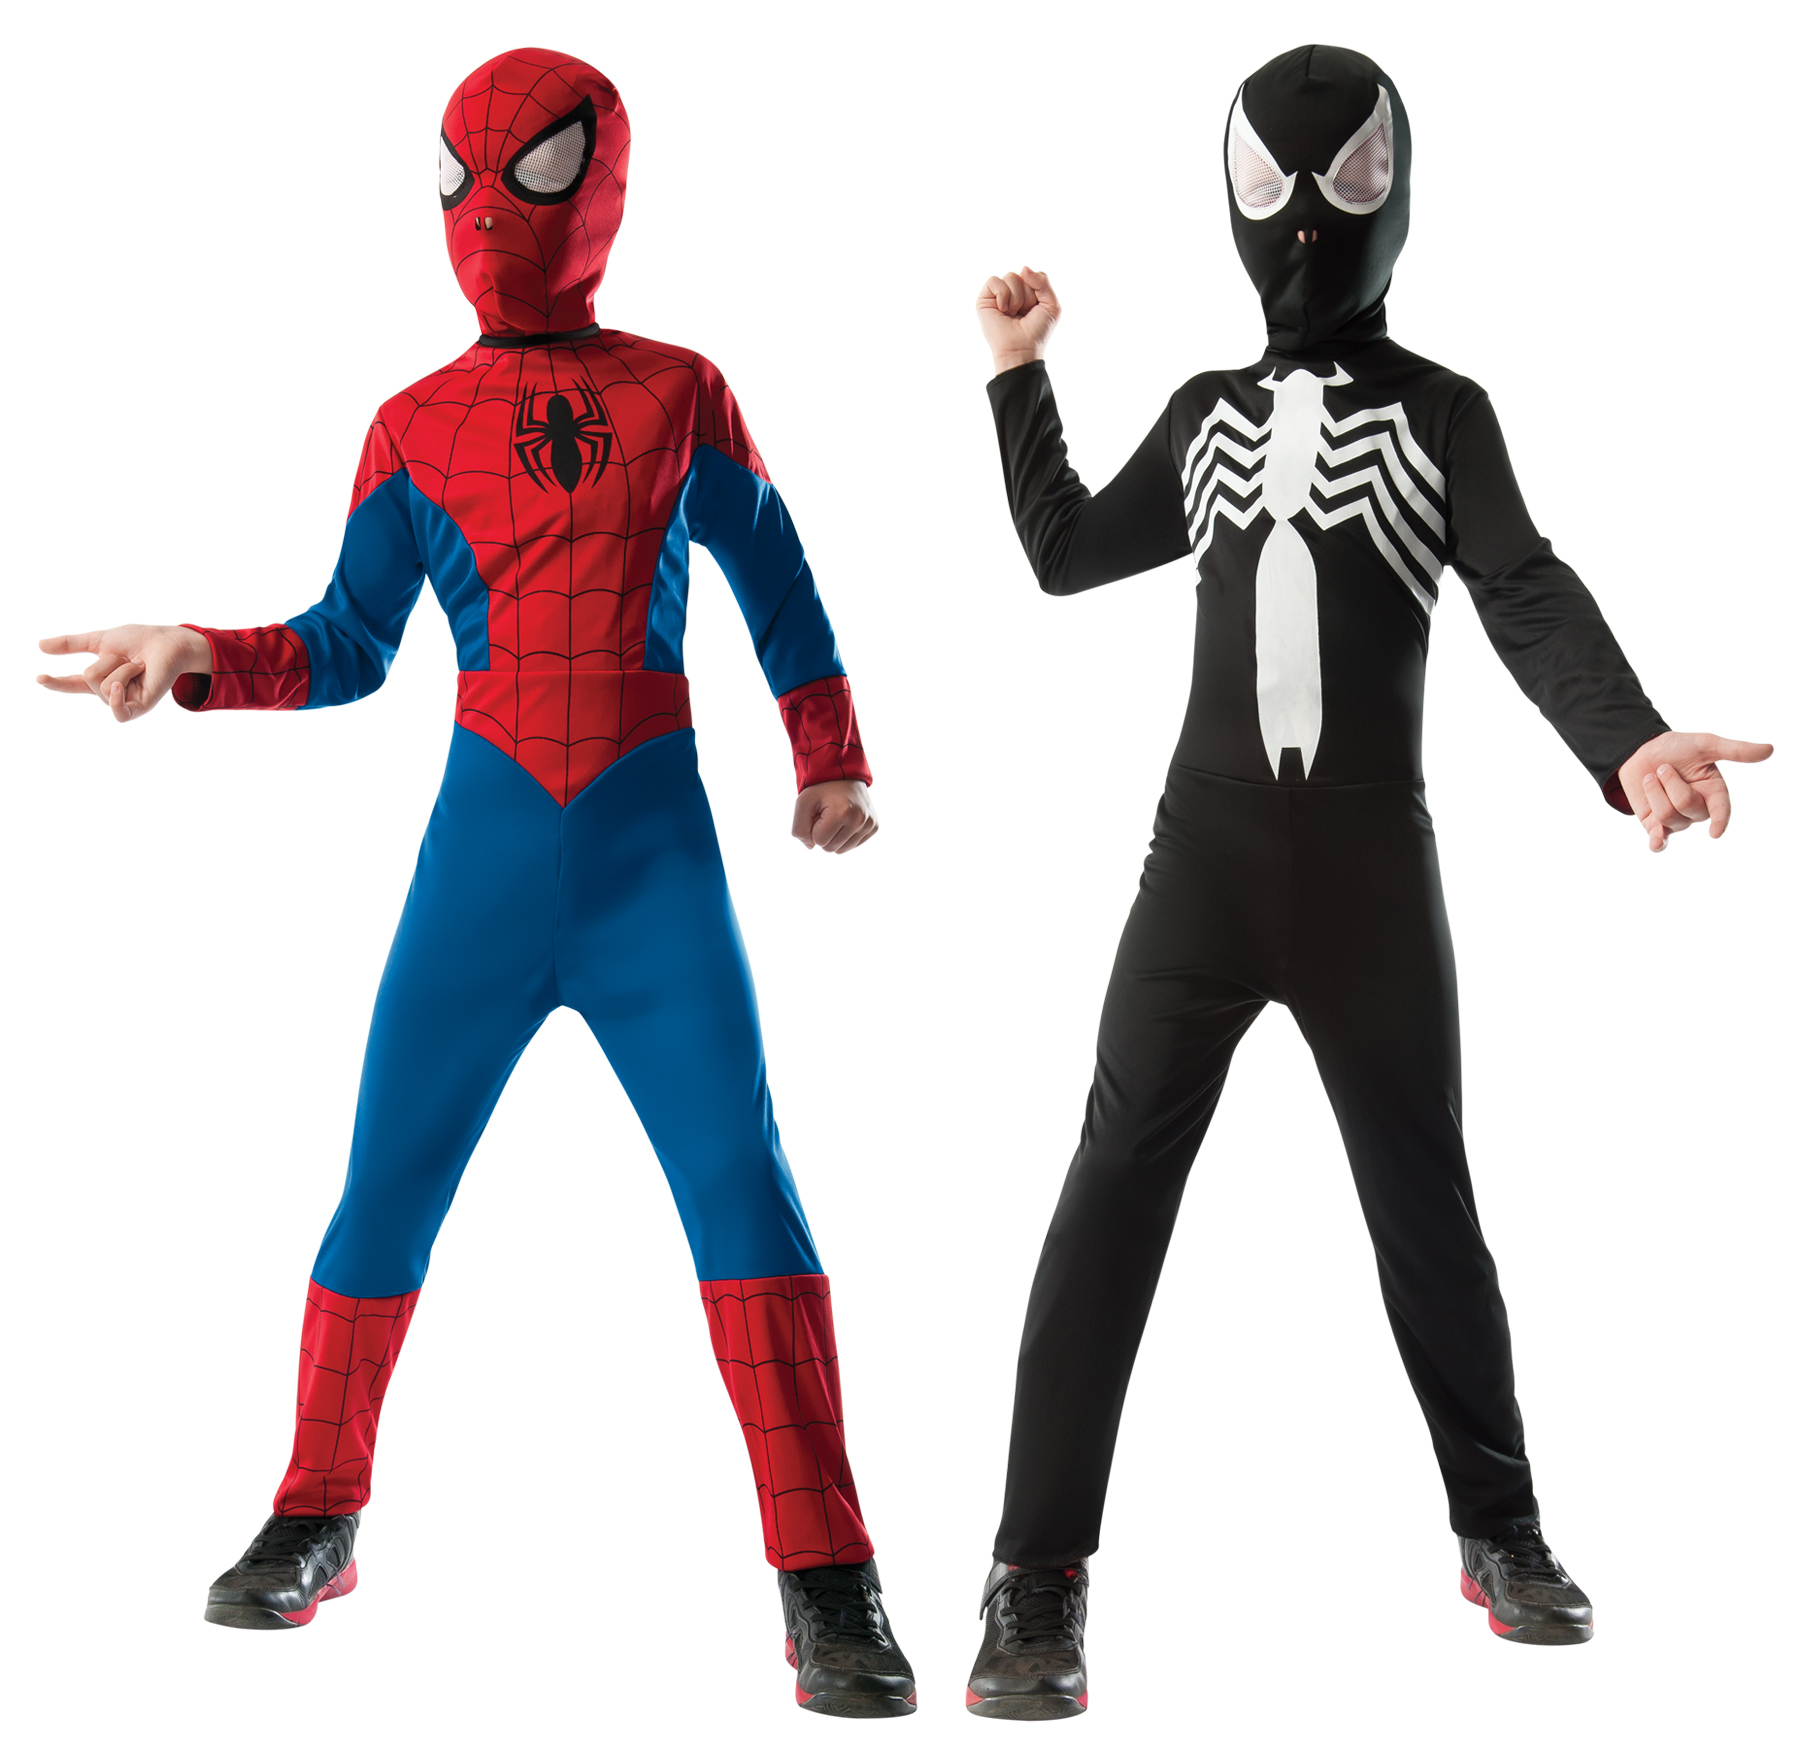 REVERSIBLE SPIDER-MAN/VENOM COSTUME FOR BOYS